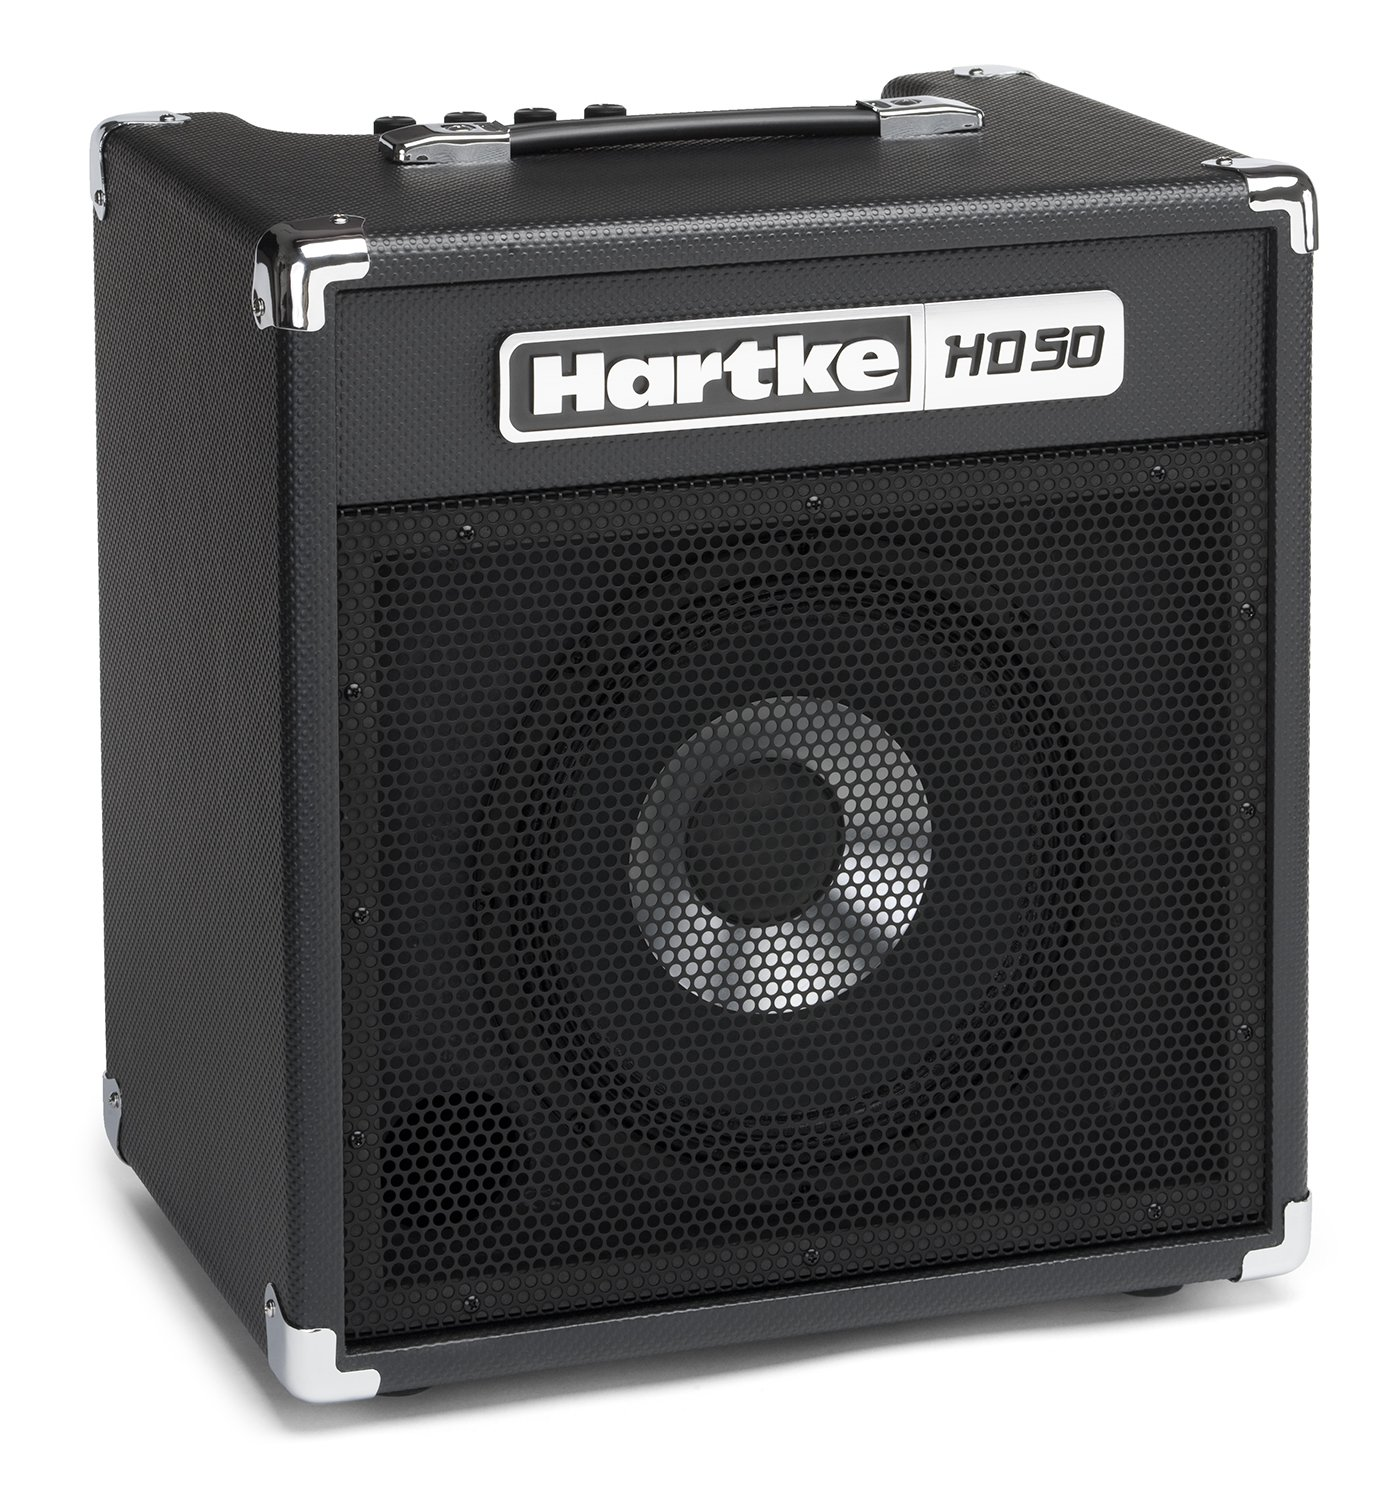 Top 10 Best Bass Combo Amp Under $200 to $300 5